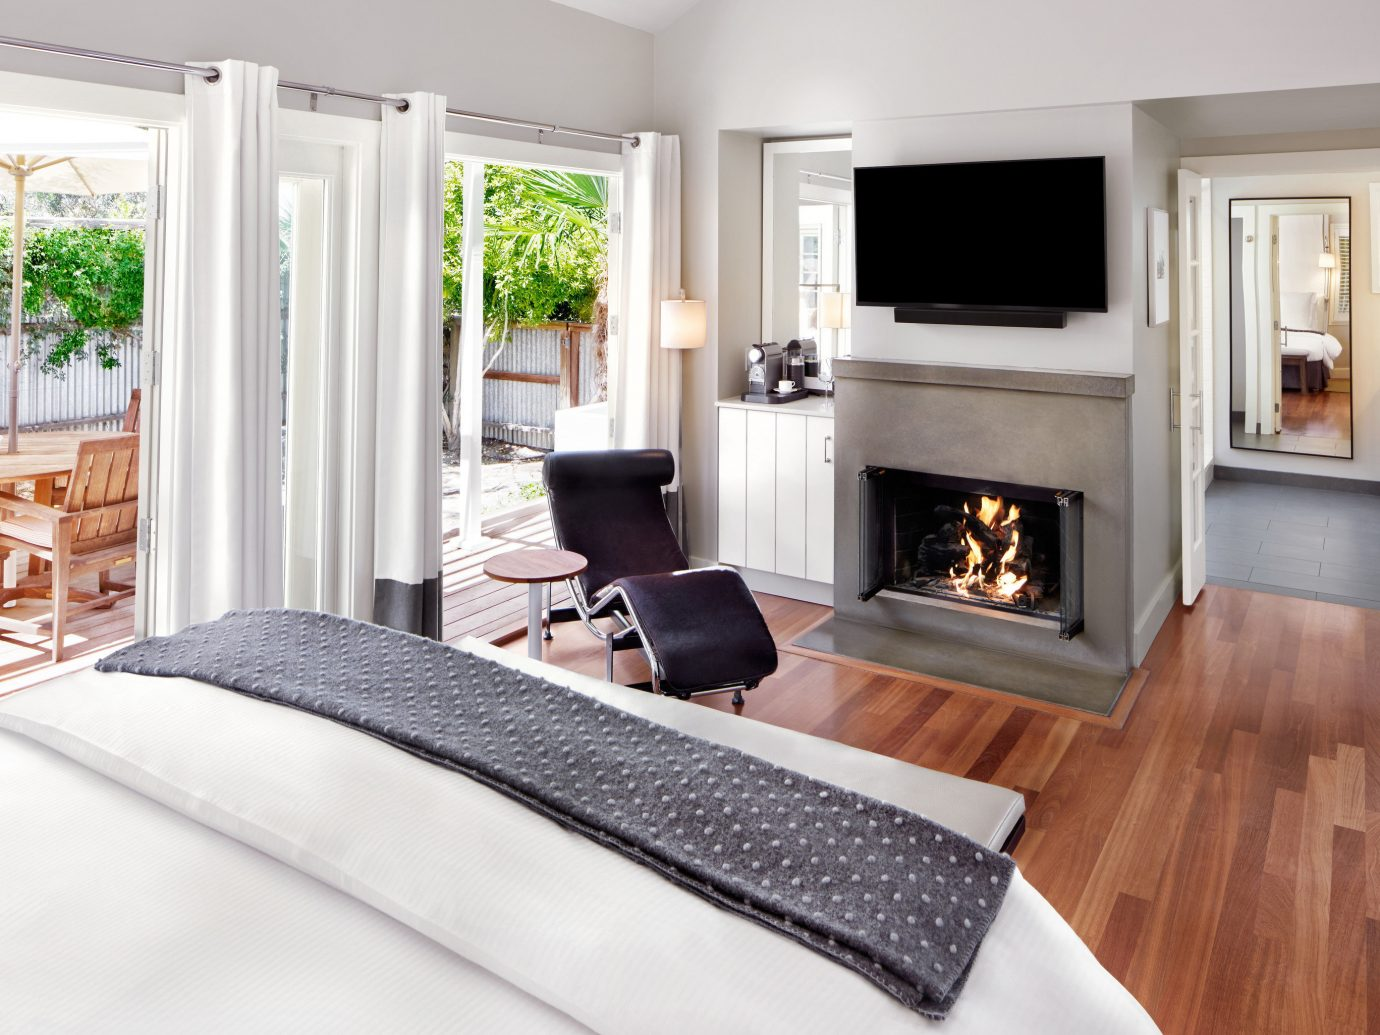 Bedroom at Carneros Resort and Spa